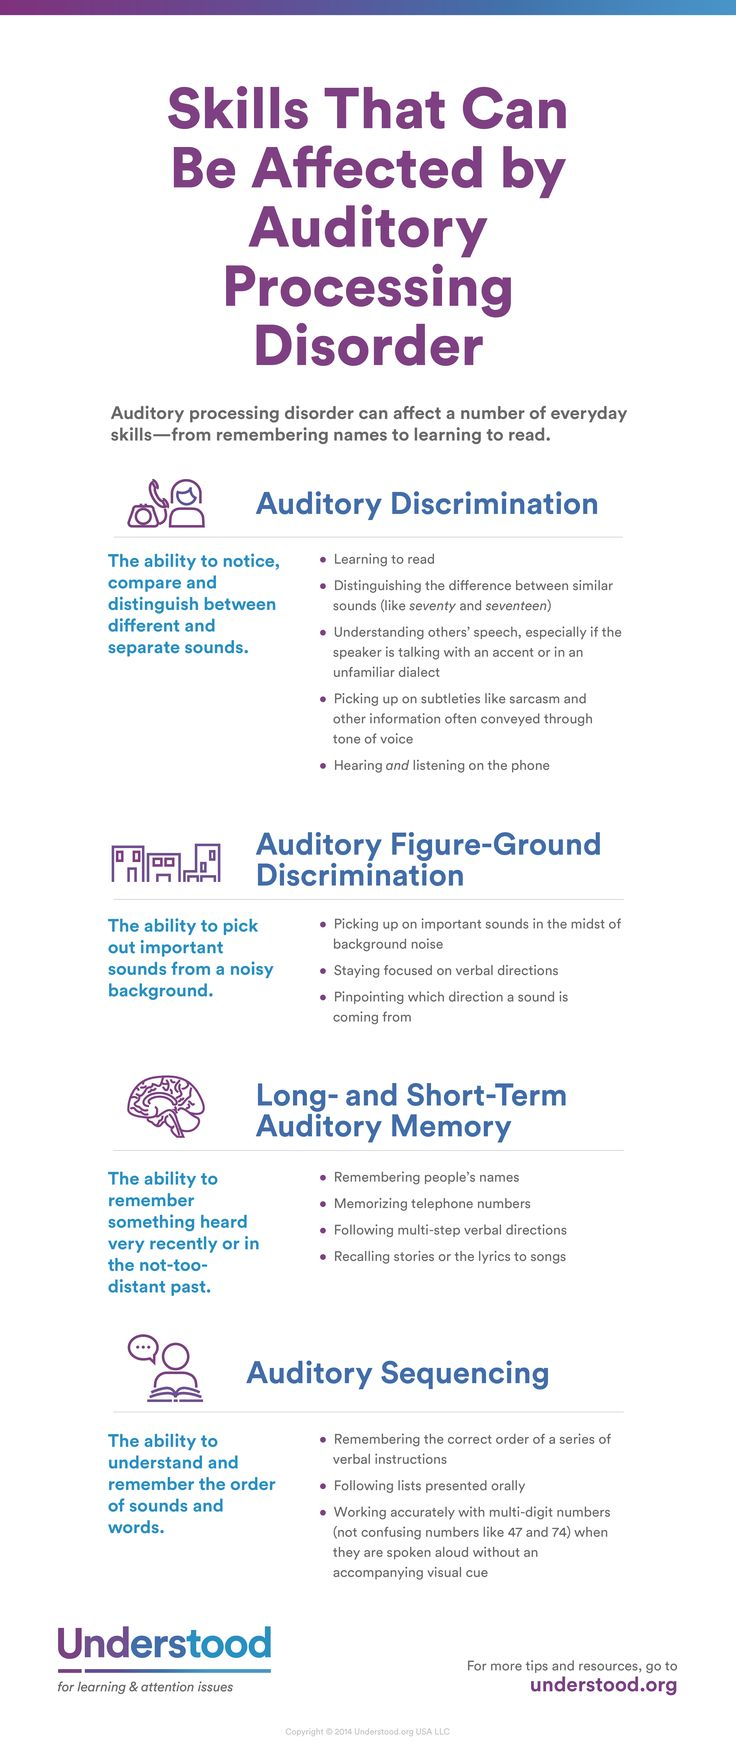 Graphic of Skills That Can Be Affected by Auditory Processing Disorder